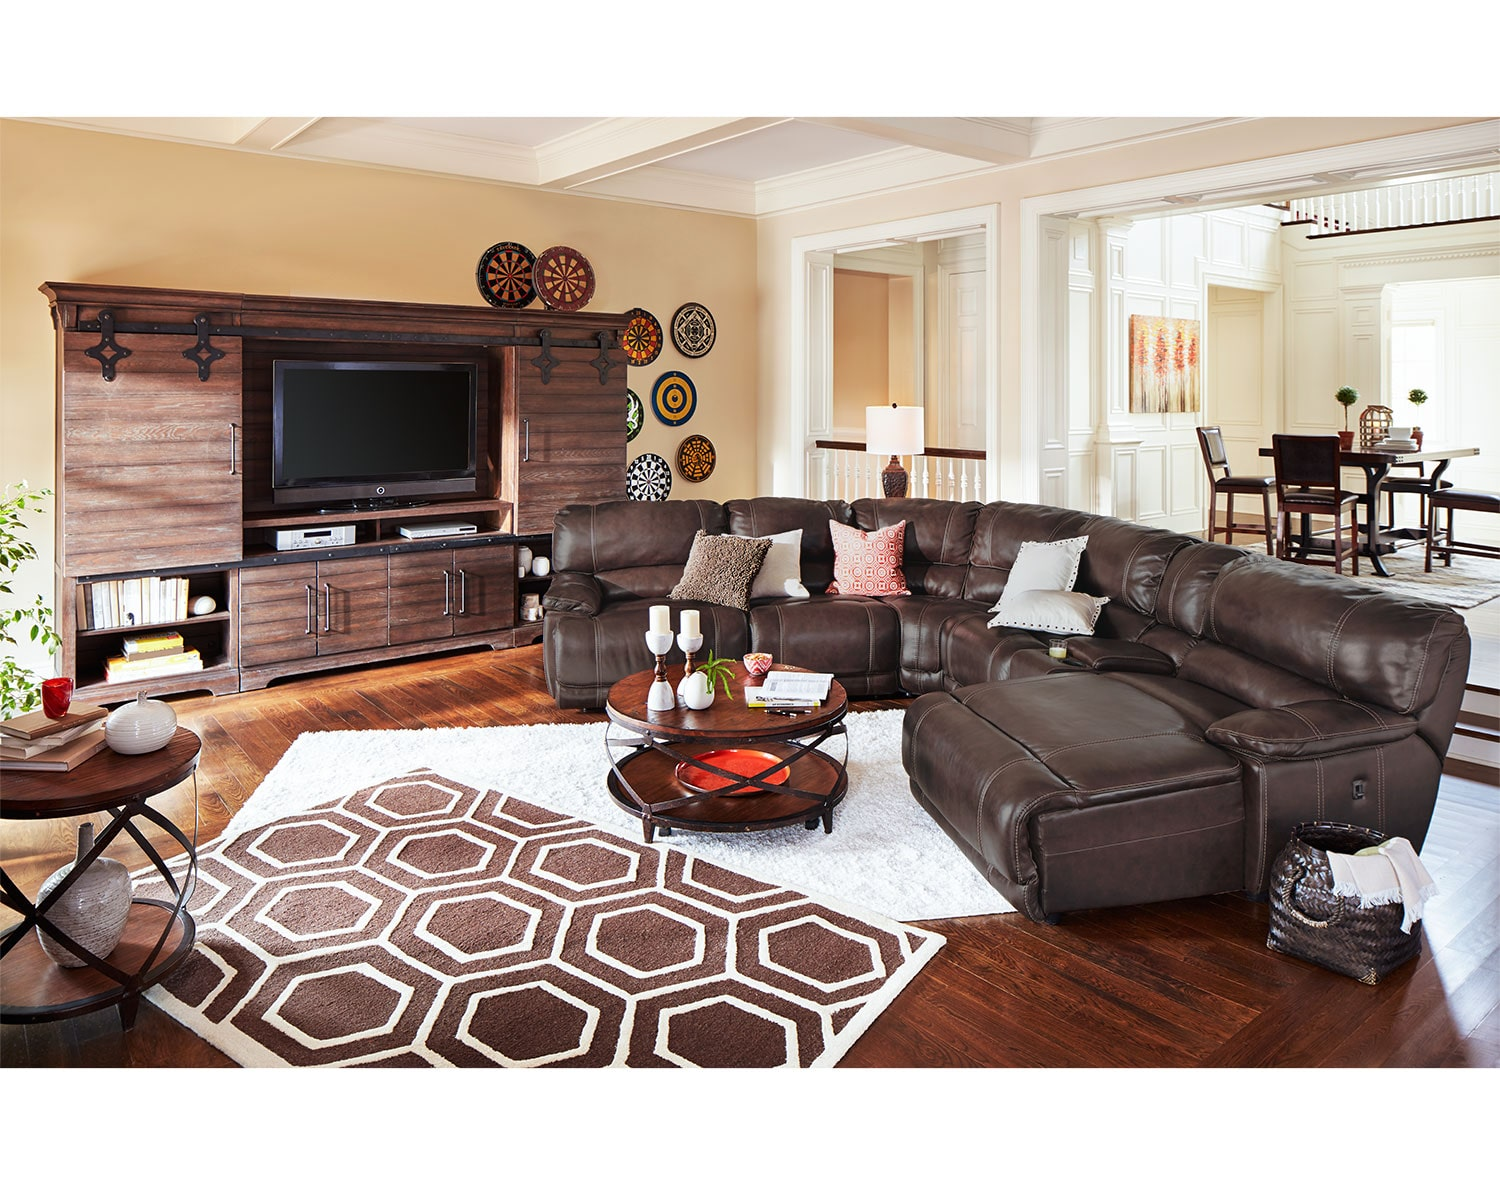 Leather Living Room Sets leather living room furniture | value city furniture